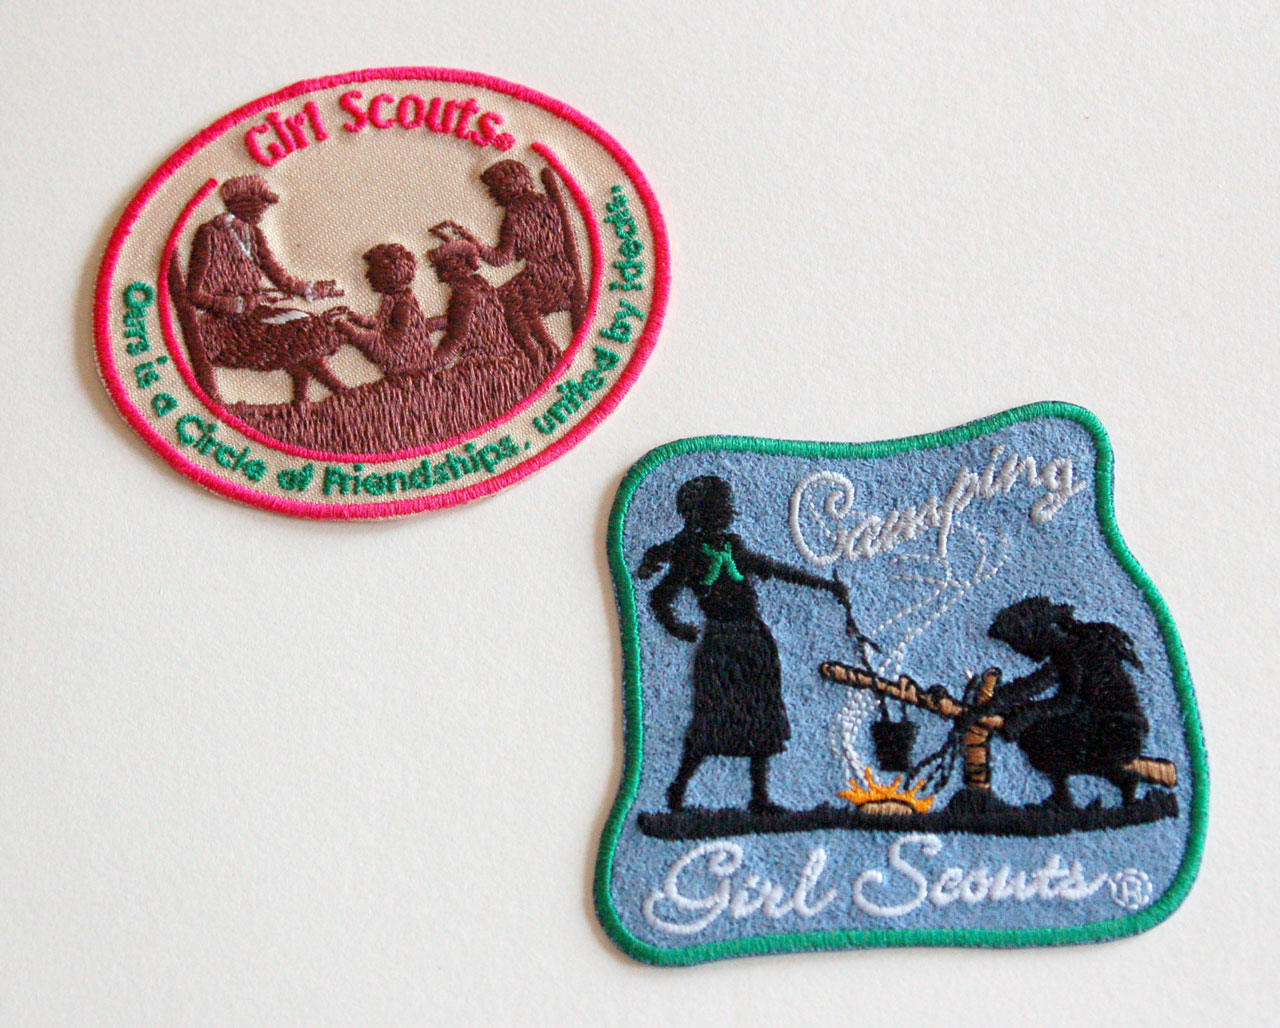 Girl Scout Fun Patches vintage patches